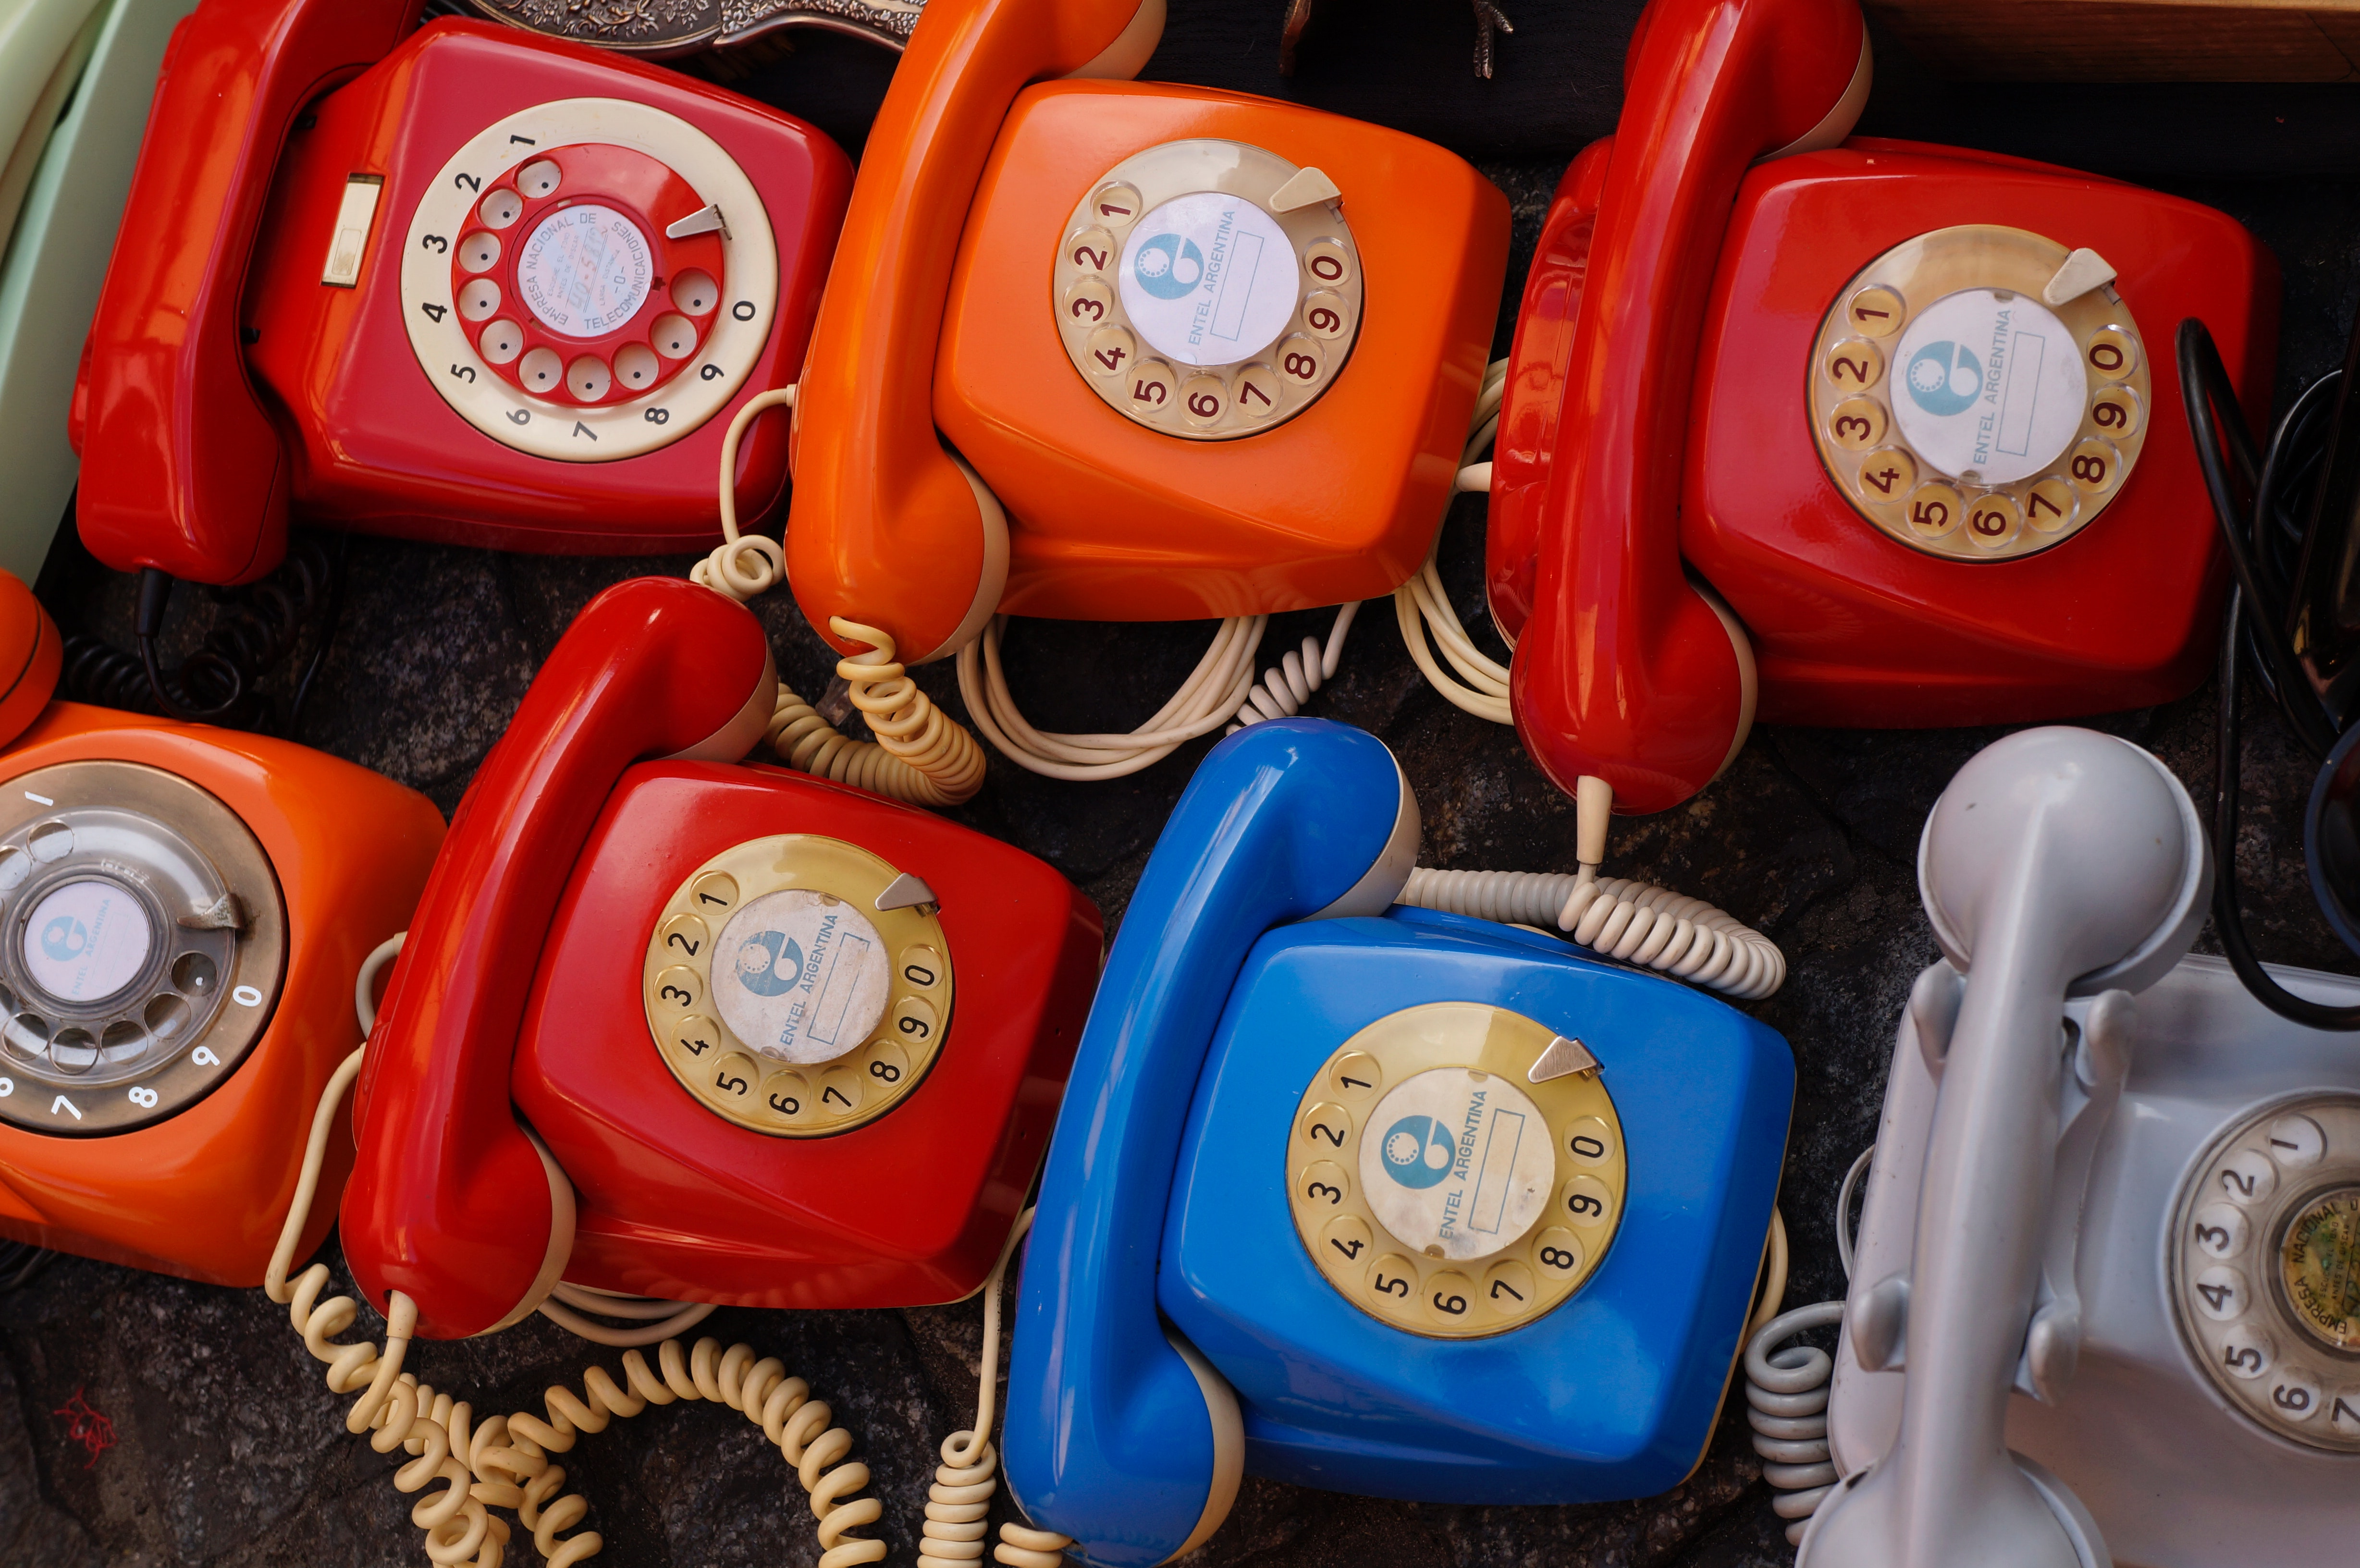 Seven assorted colored rotary telephones photo